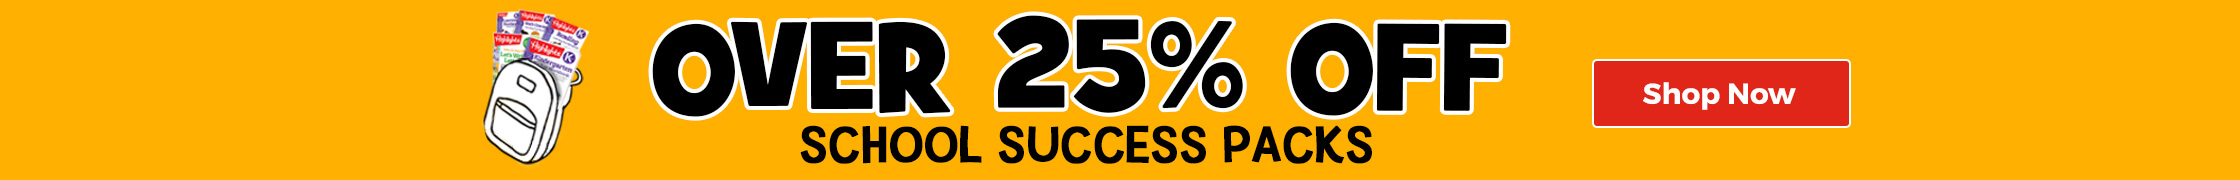 School Success Packs are over 25% off